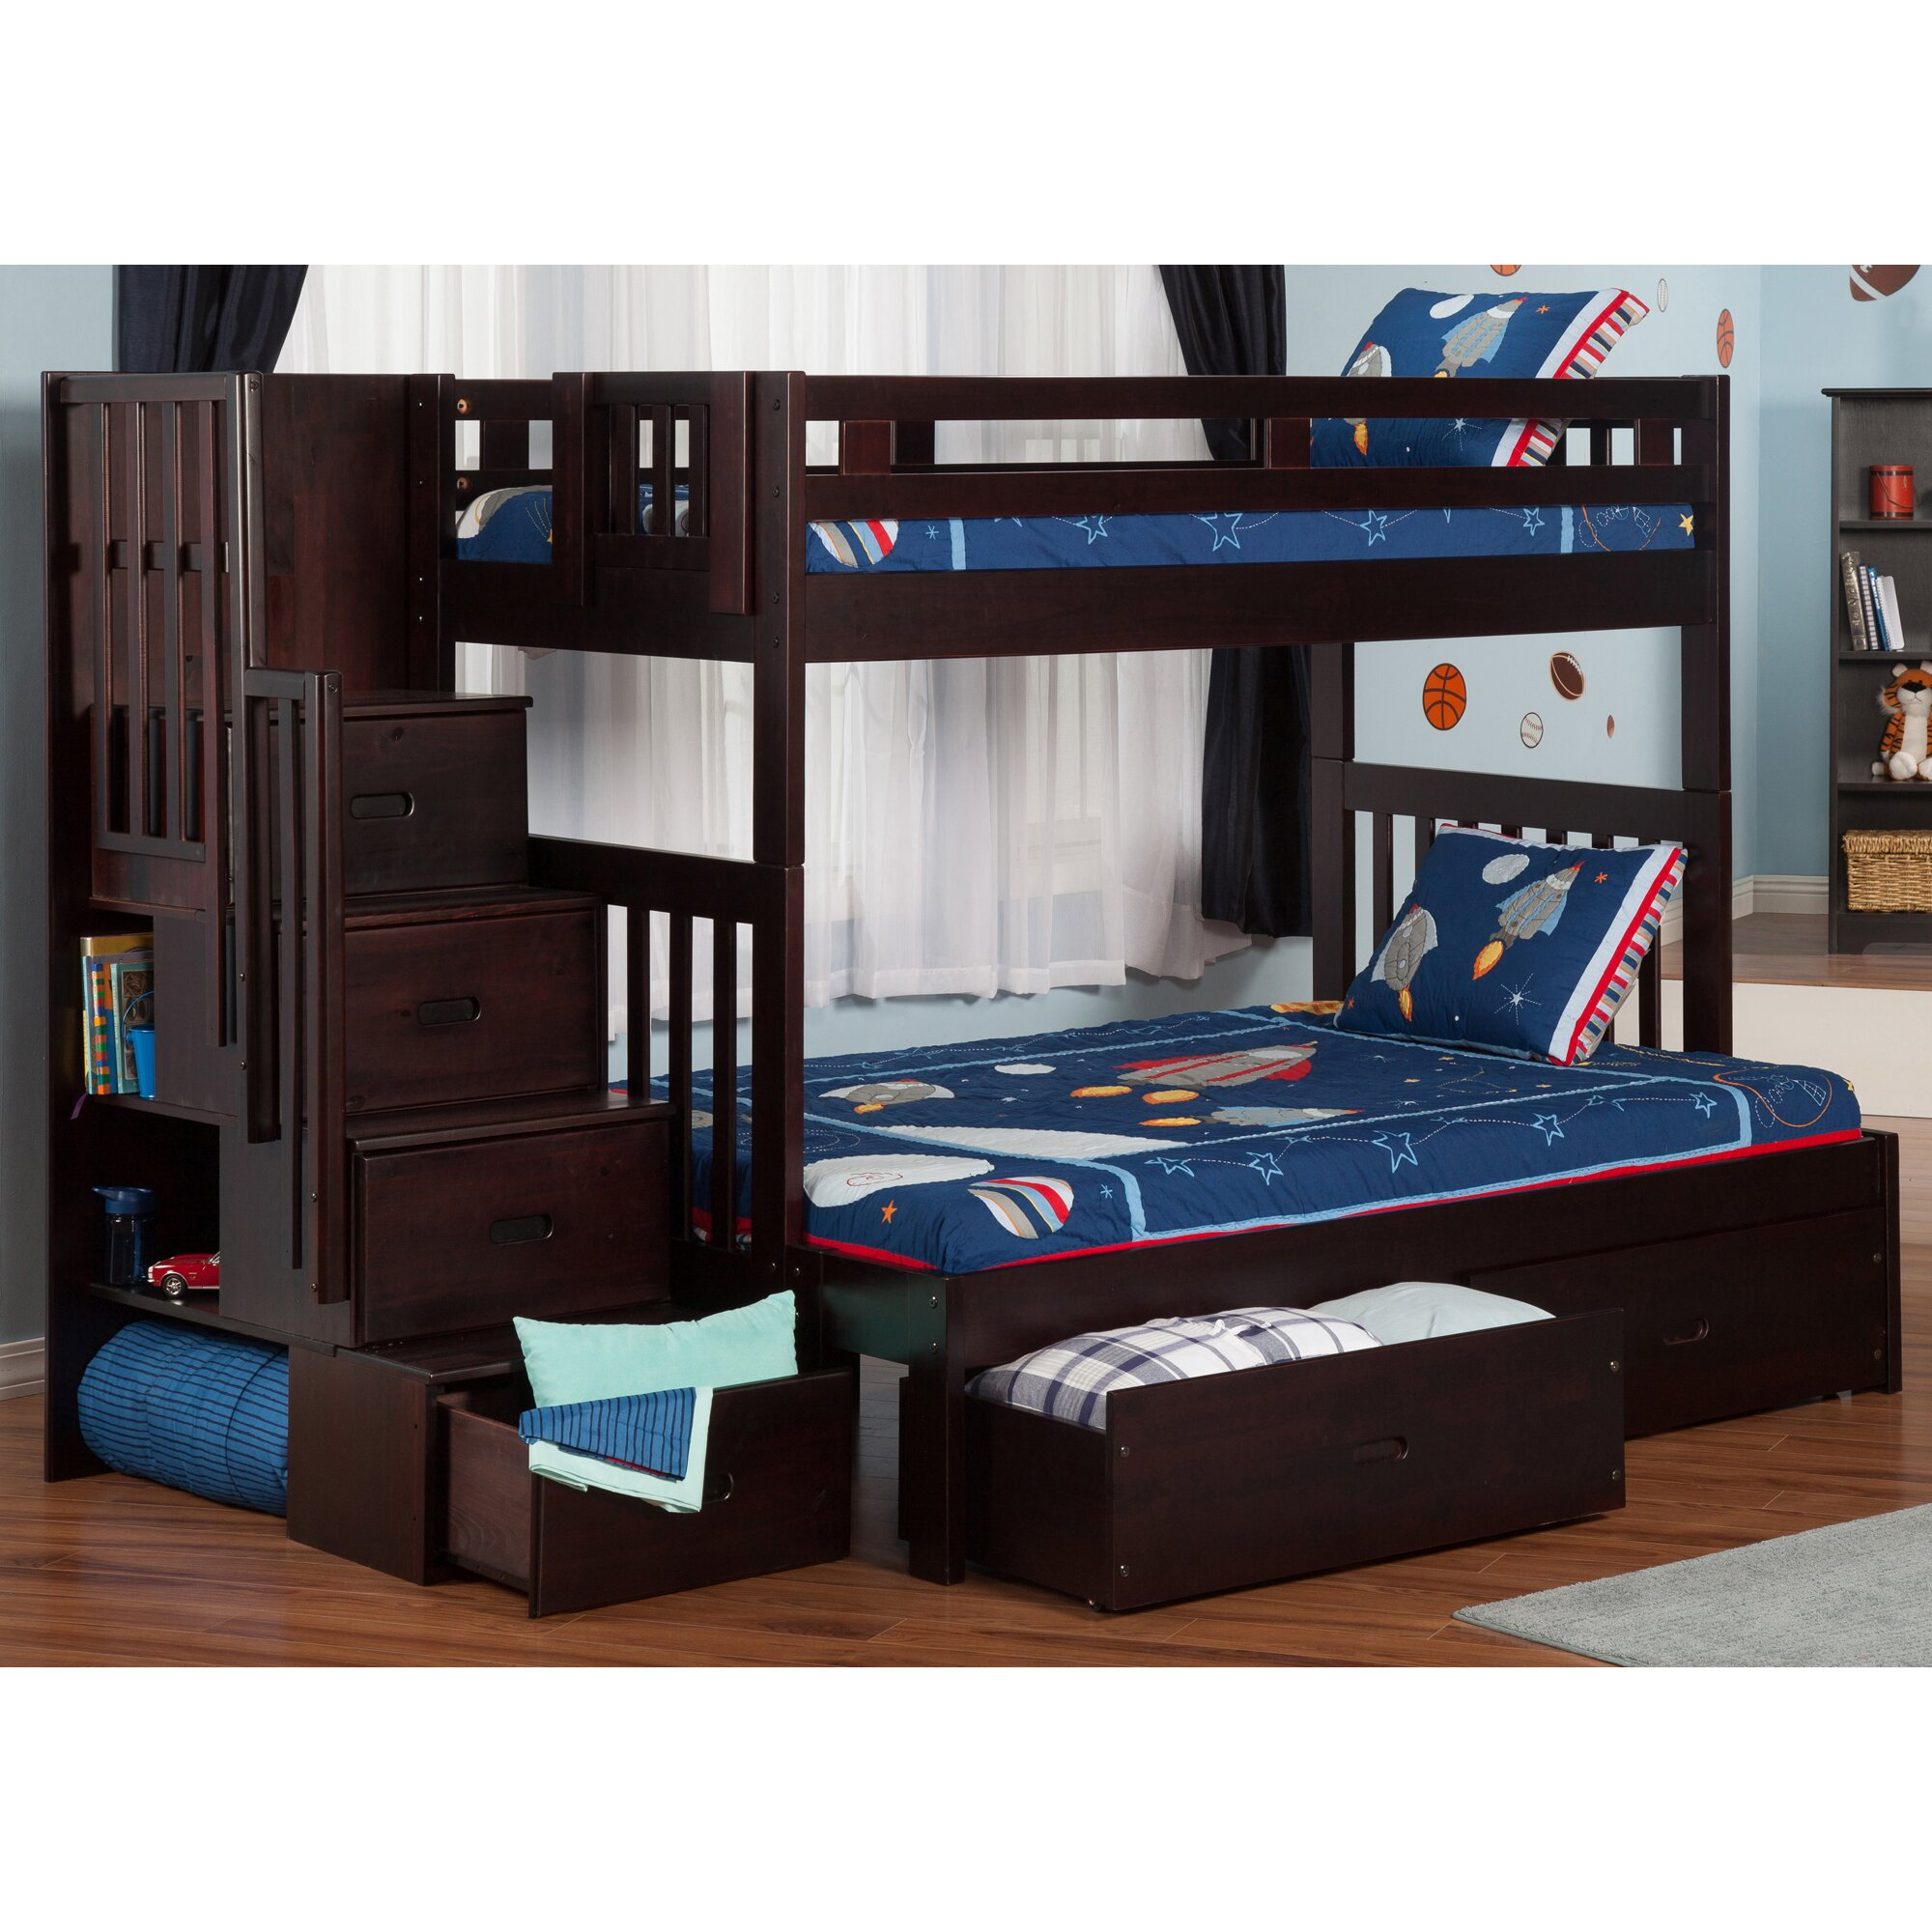 Twin over Full Bunk Bed with Staircase and Storage by Viv + Rae